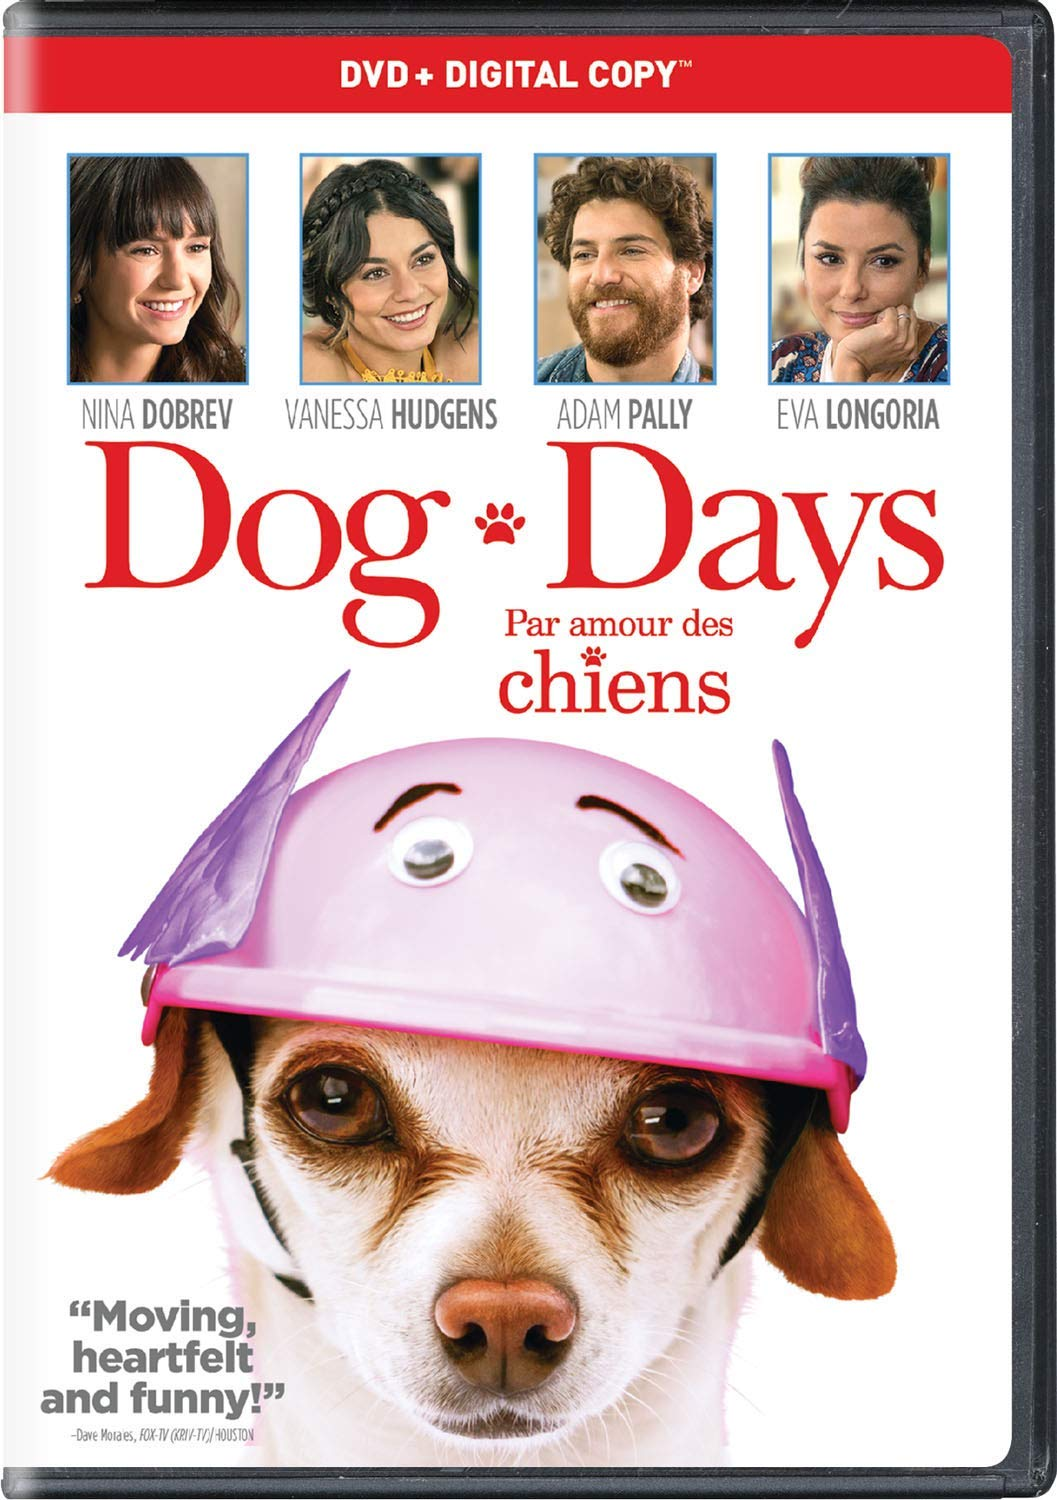 DVD Review: Dog Days | One Movie, Our Views